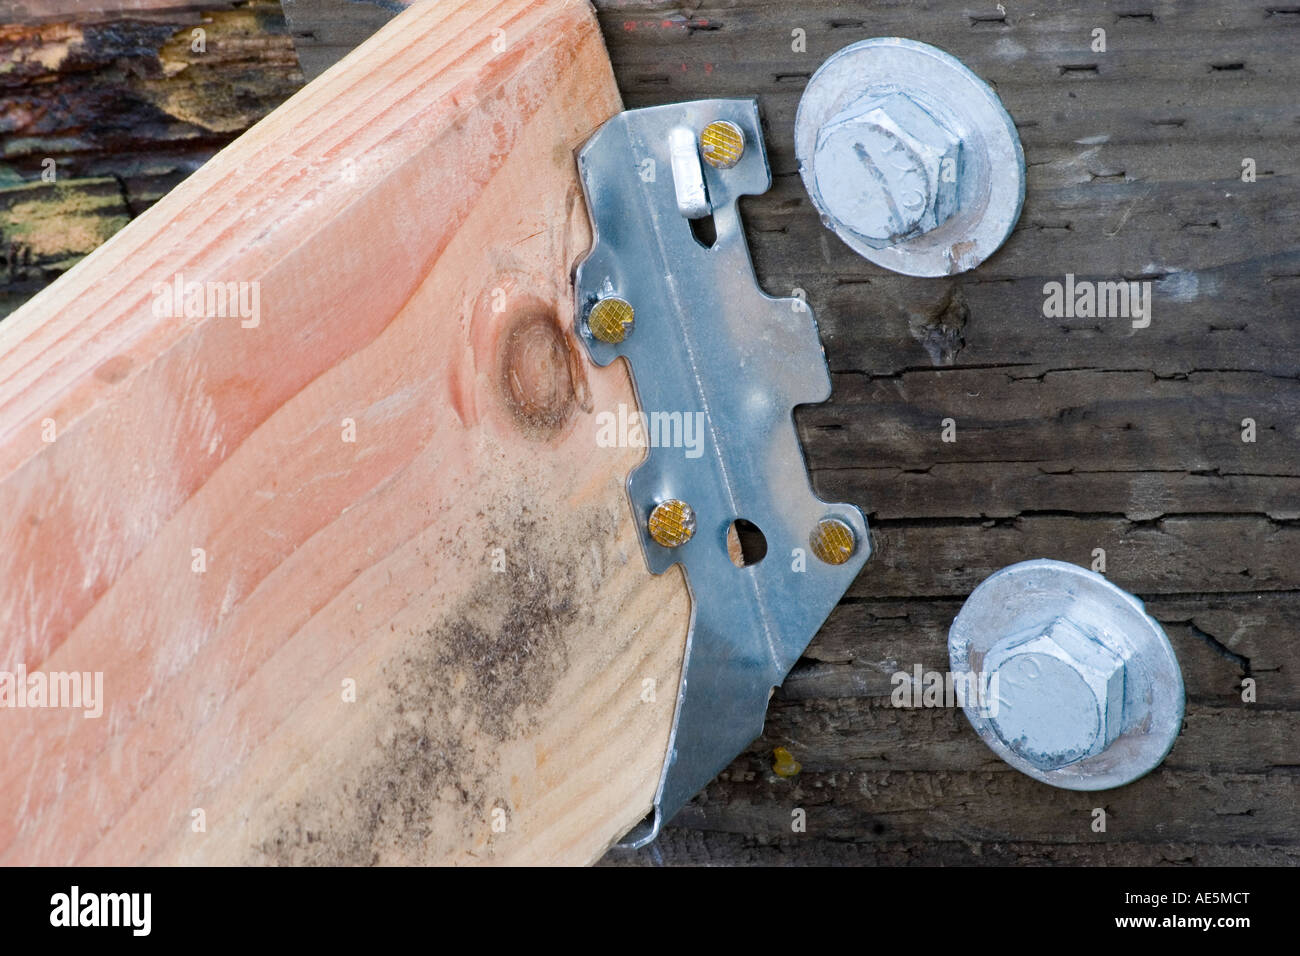 Floor joist resting in metal hanger nailed to a pressure treated rim joist next to two bolts - Stock Image